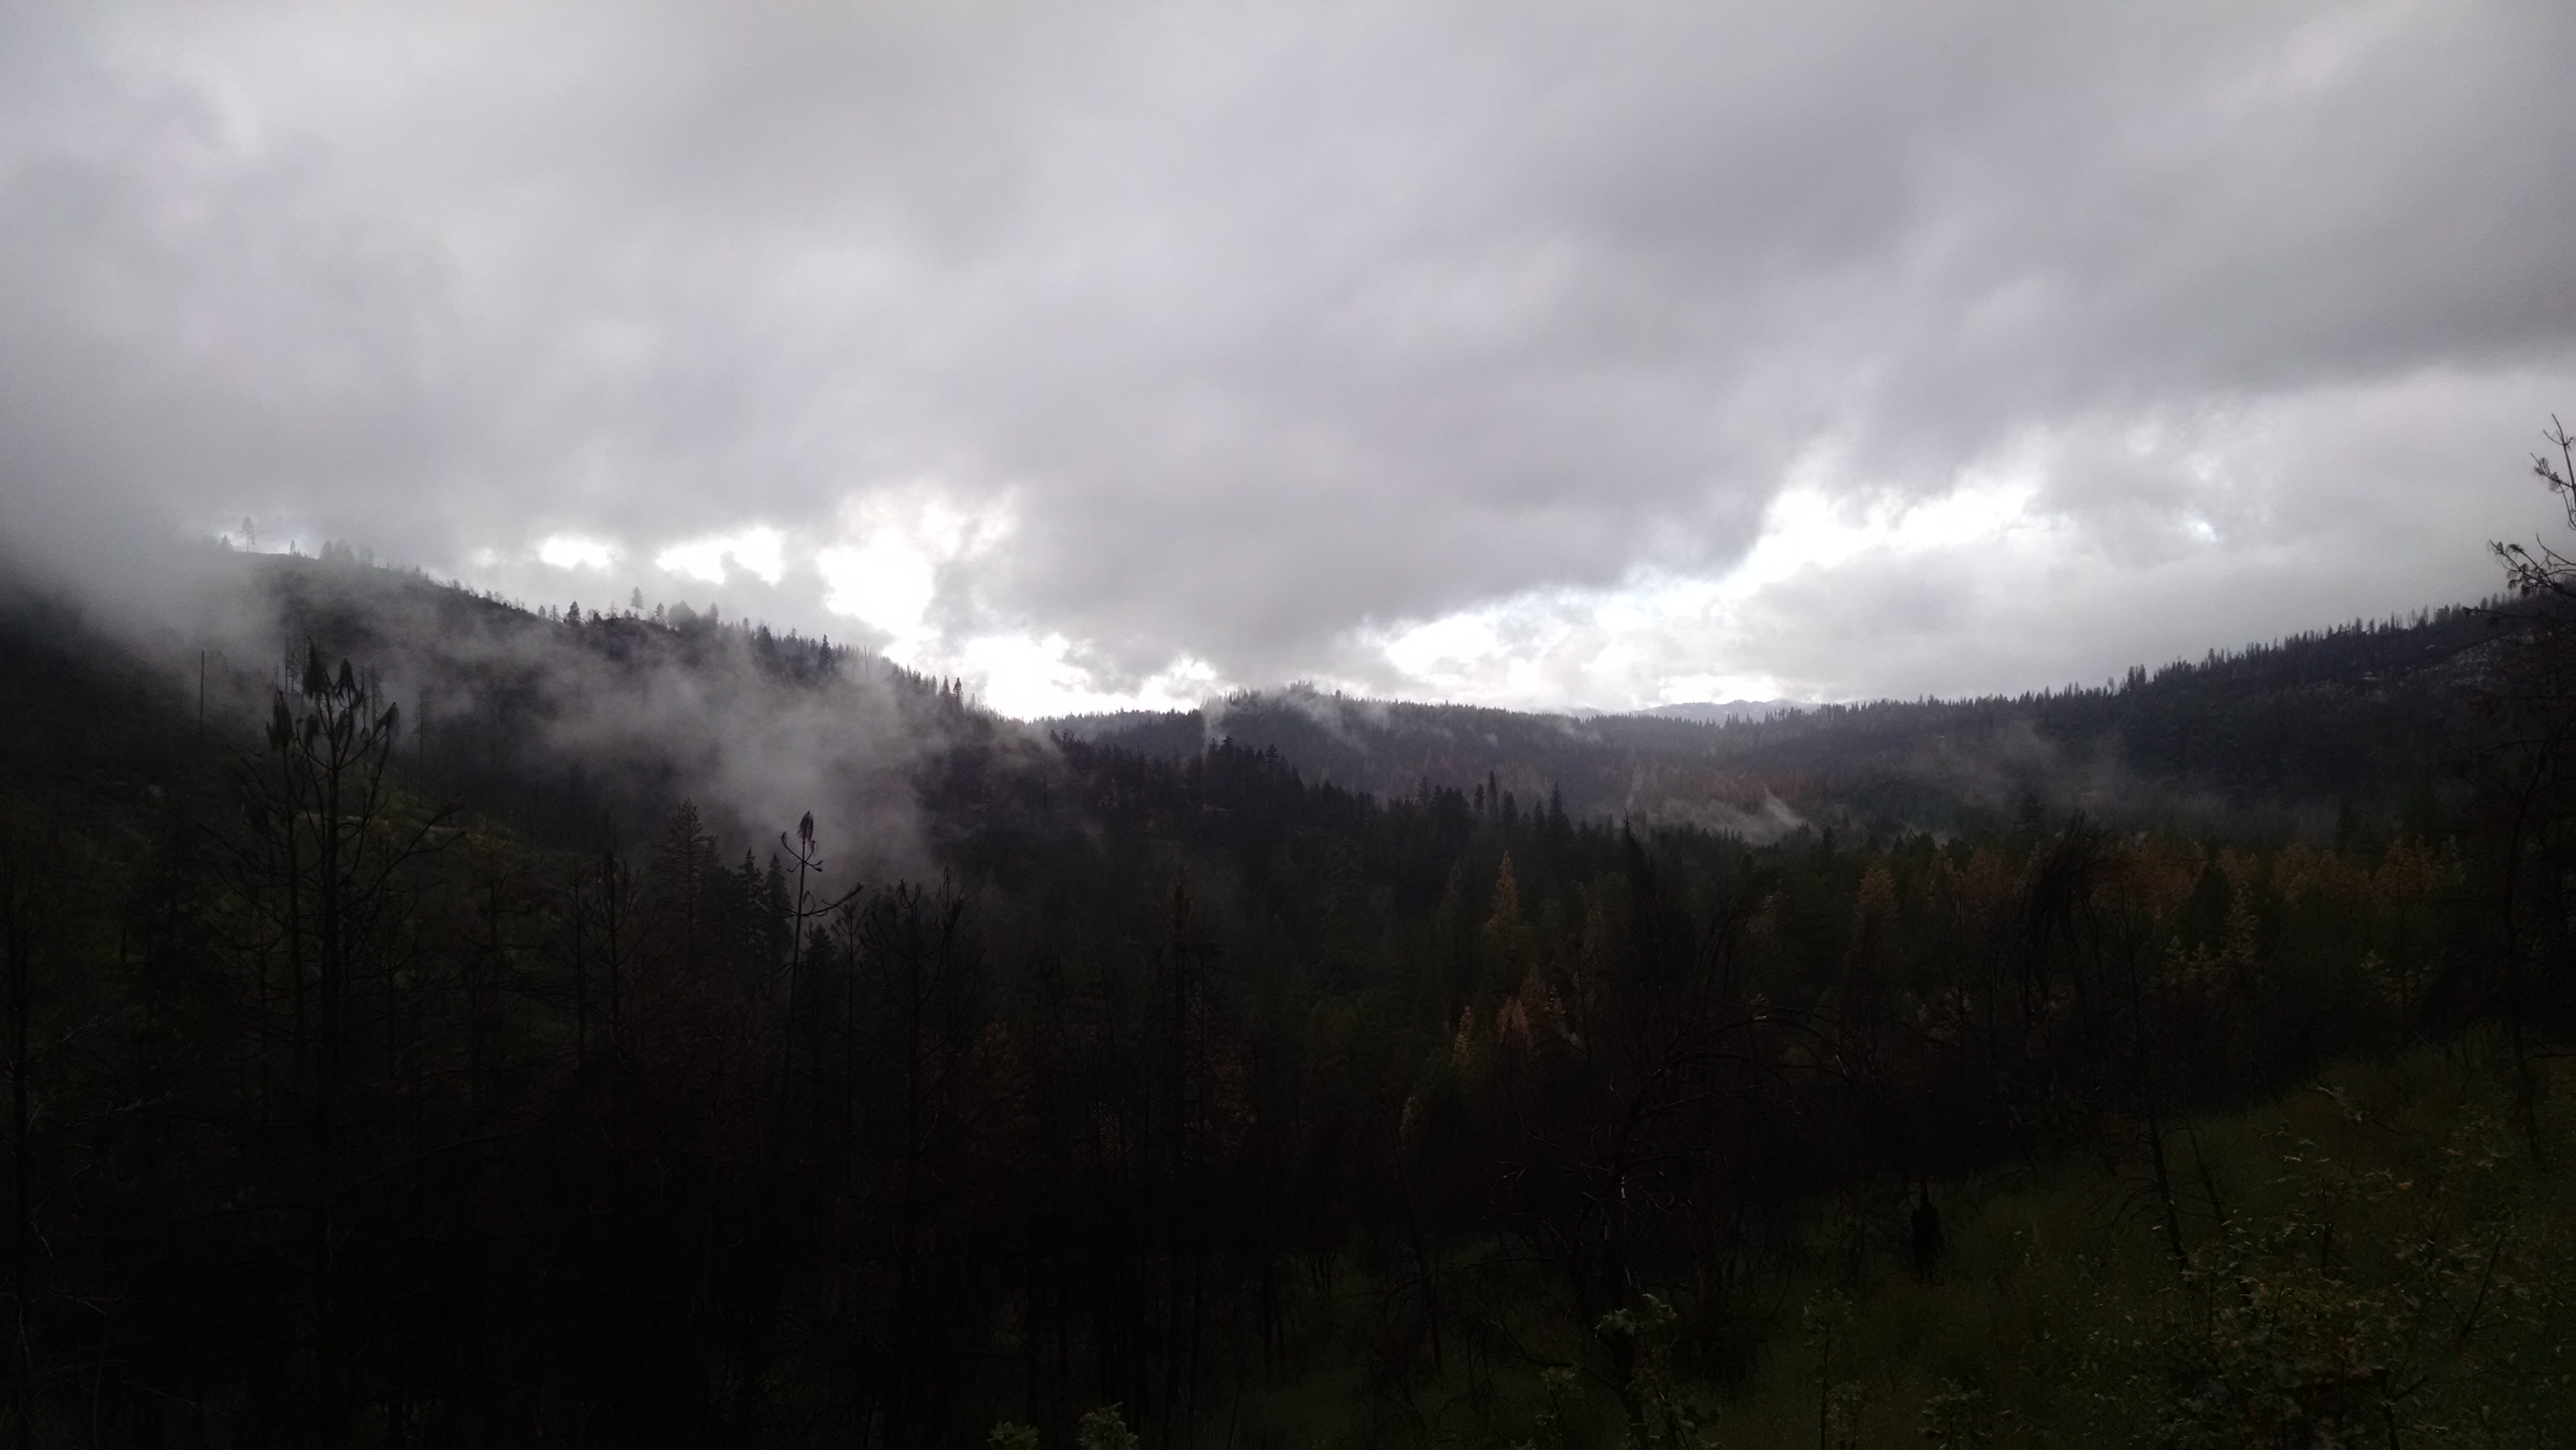 An overcast day on the Stanislaus National Forest